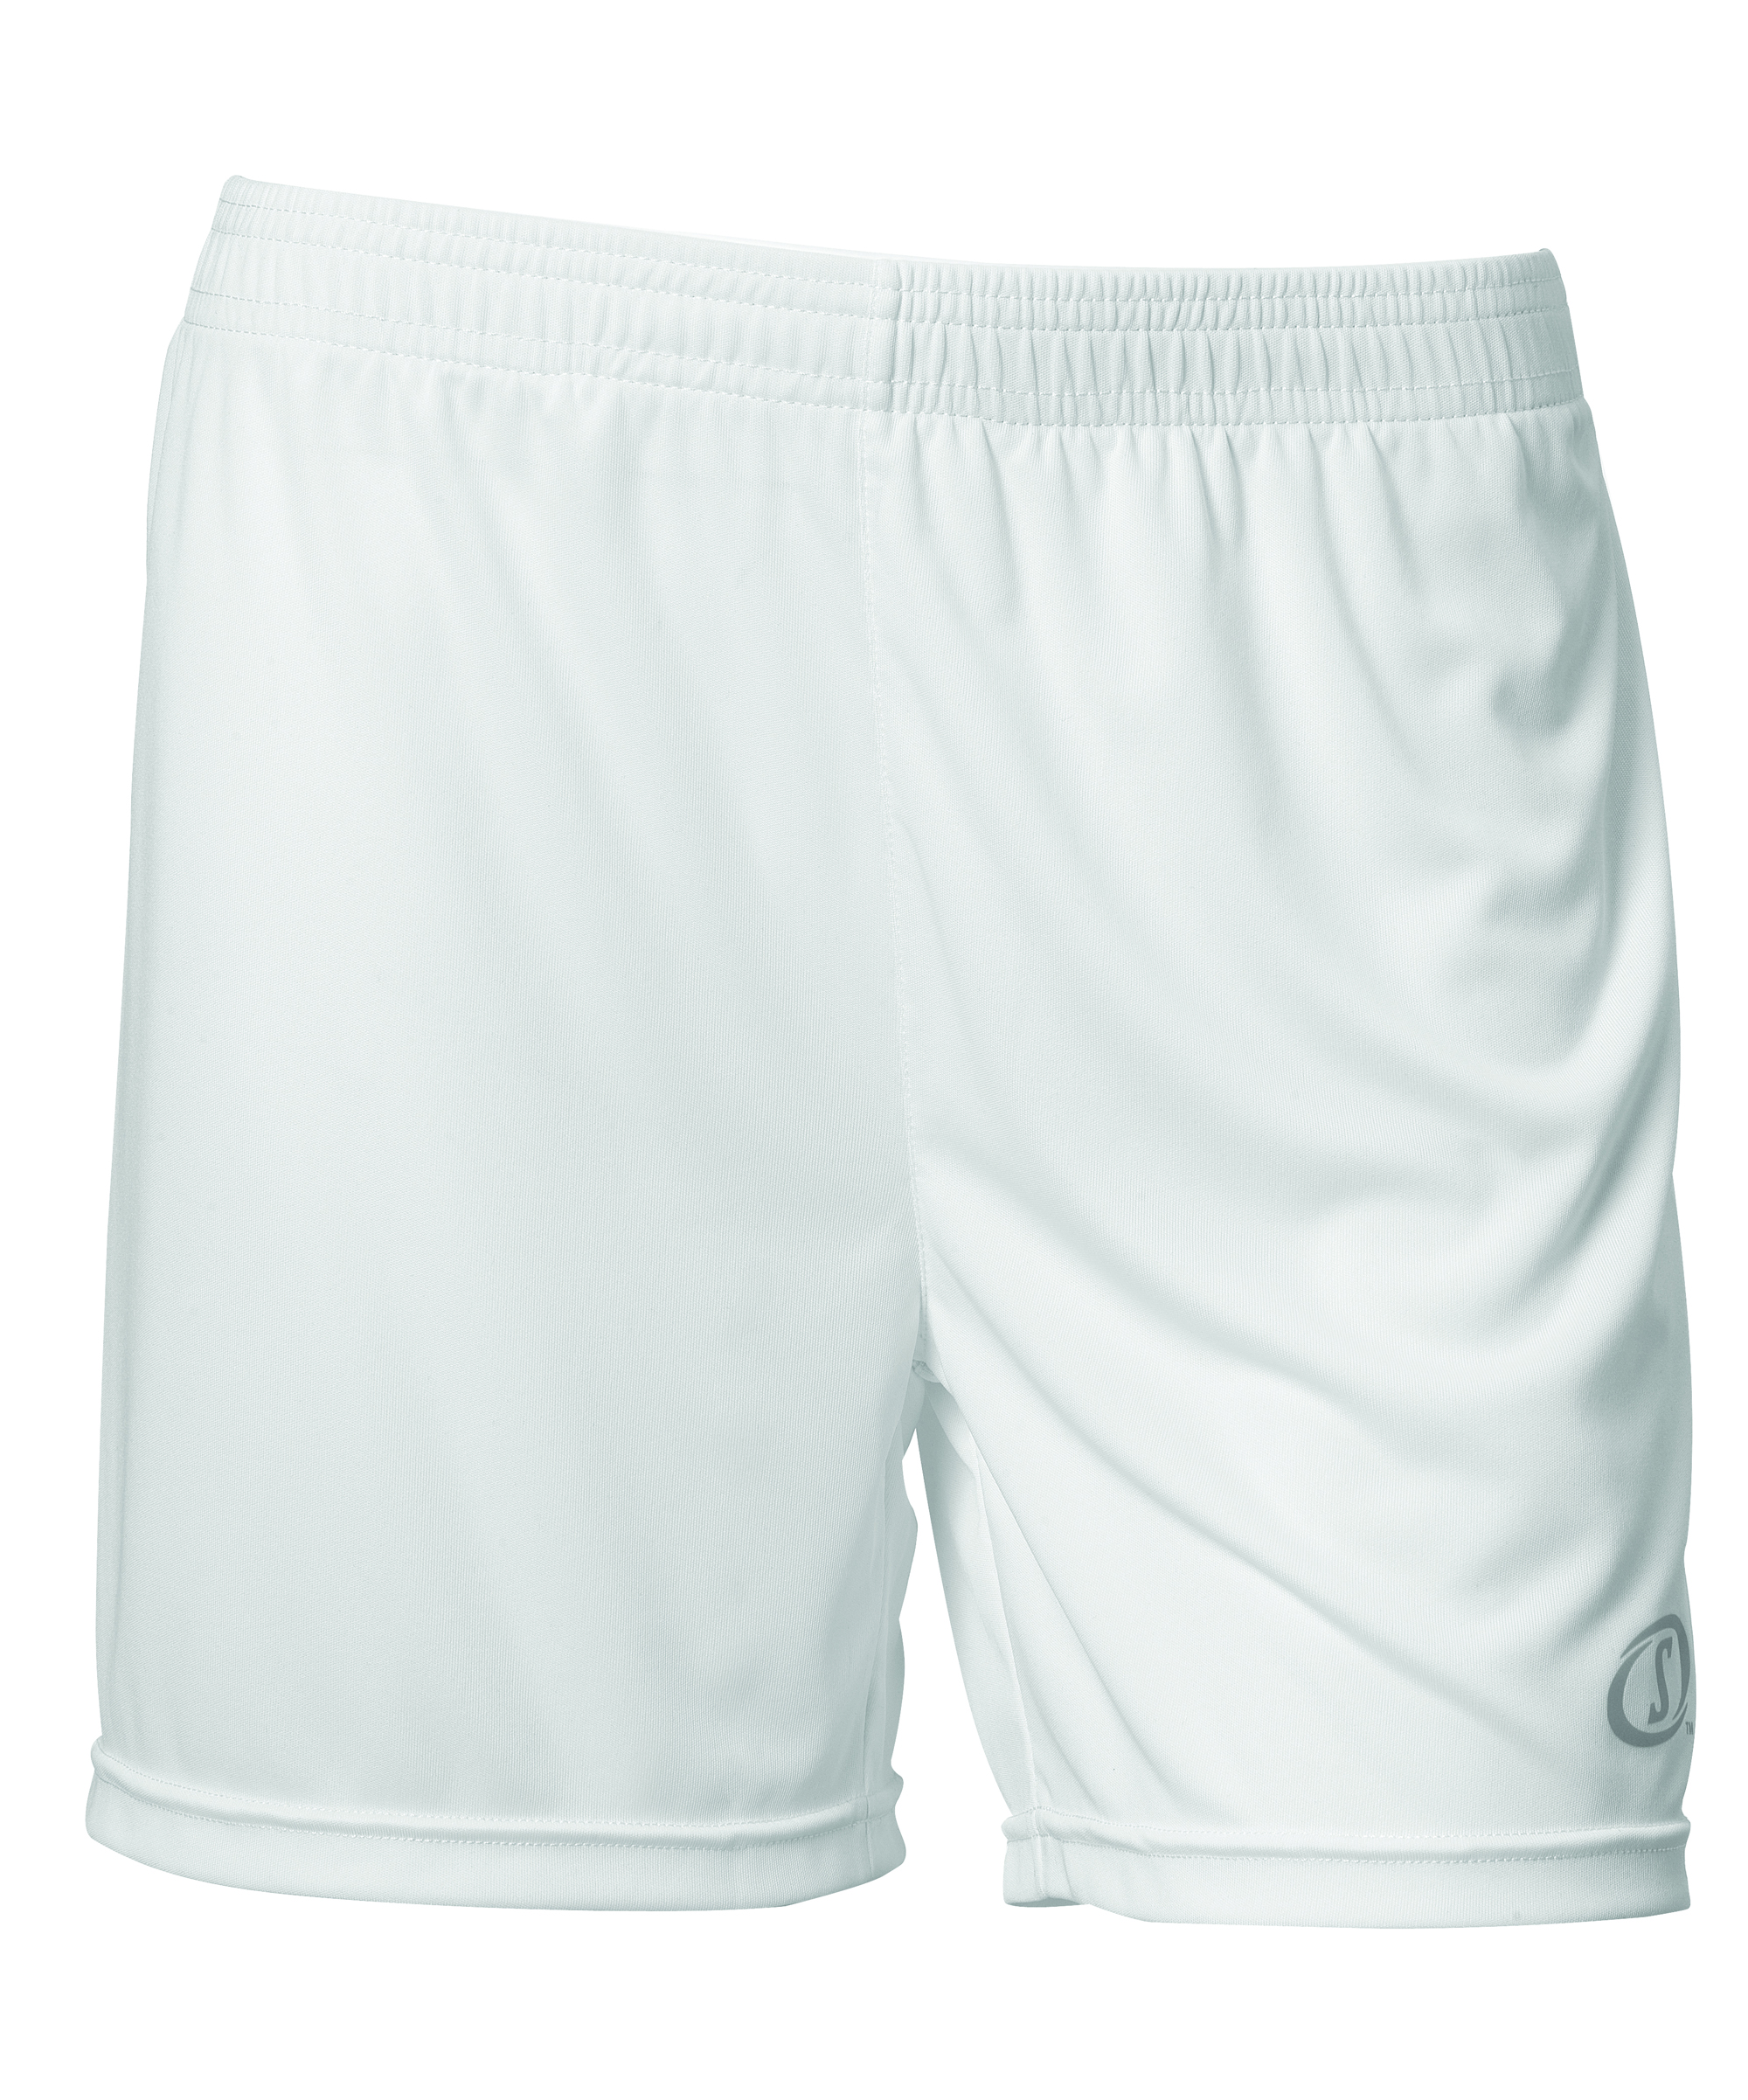 Kids Core Training Shorts - White - 128